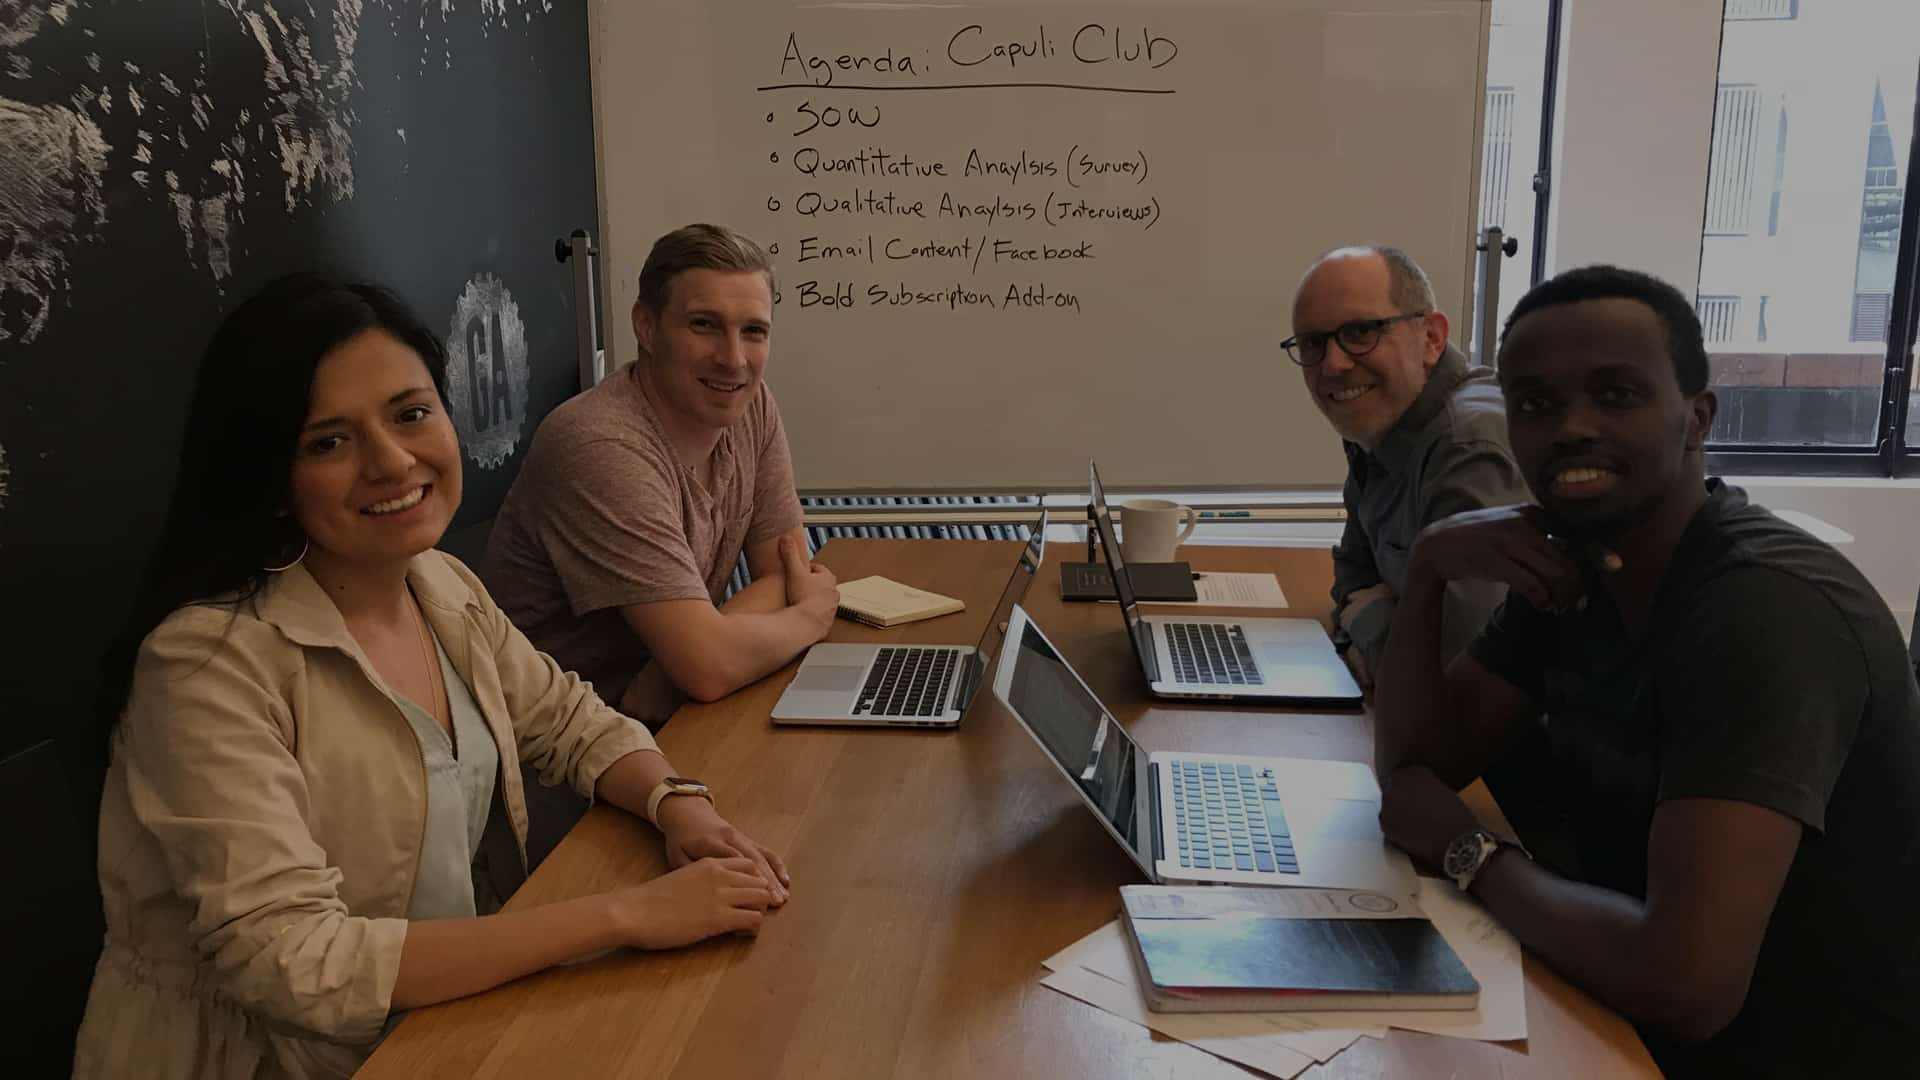 The Capuli Club UX team with client